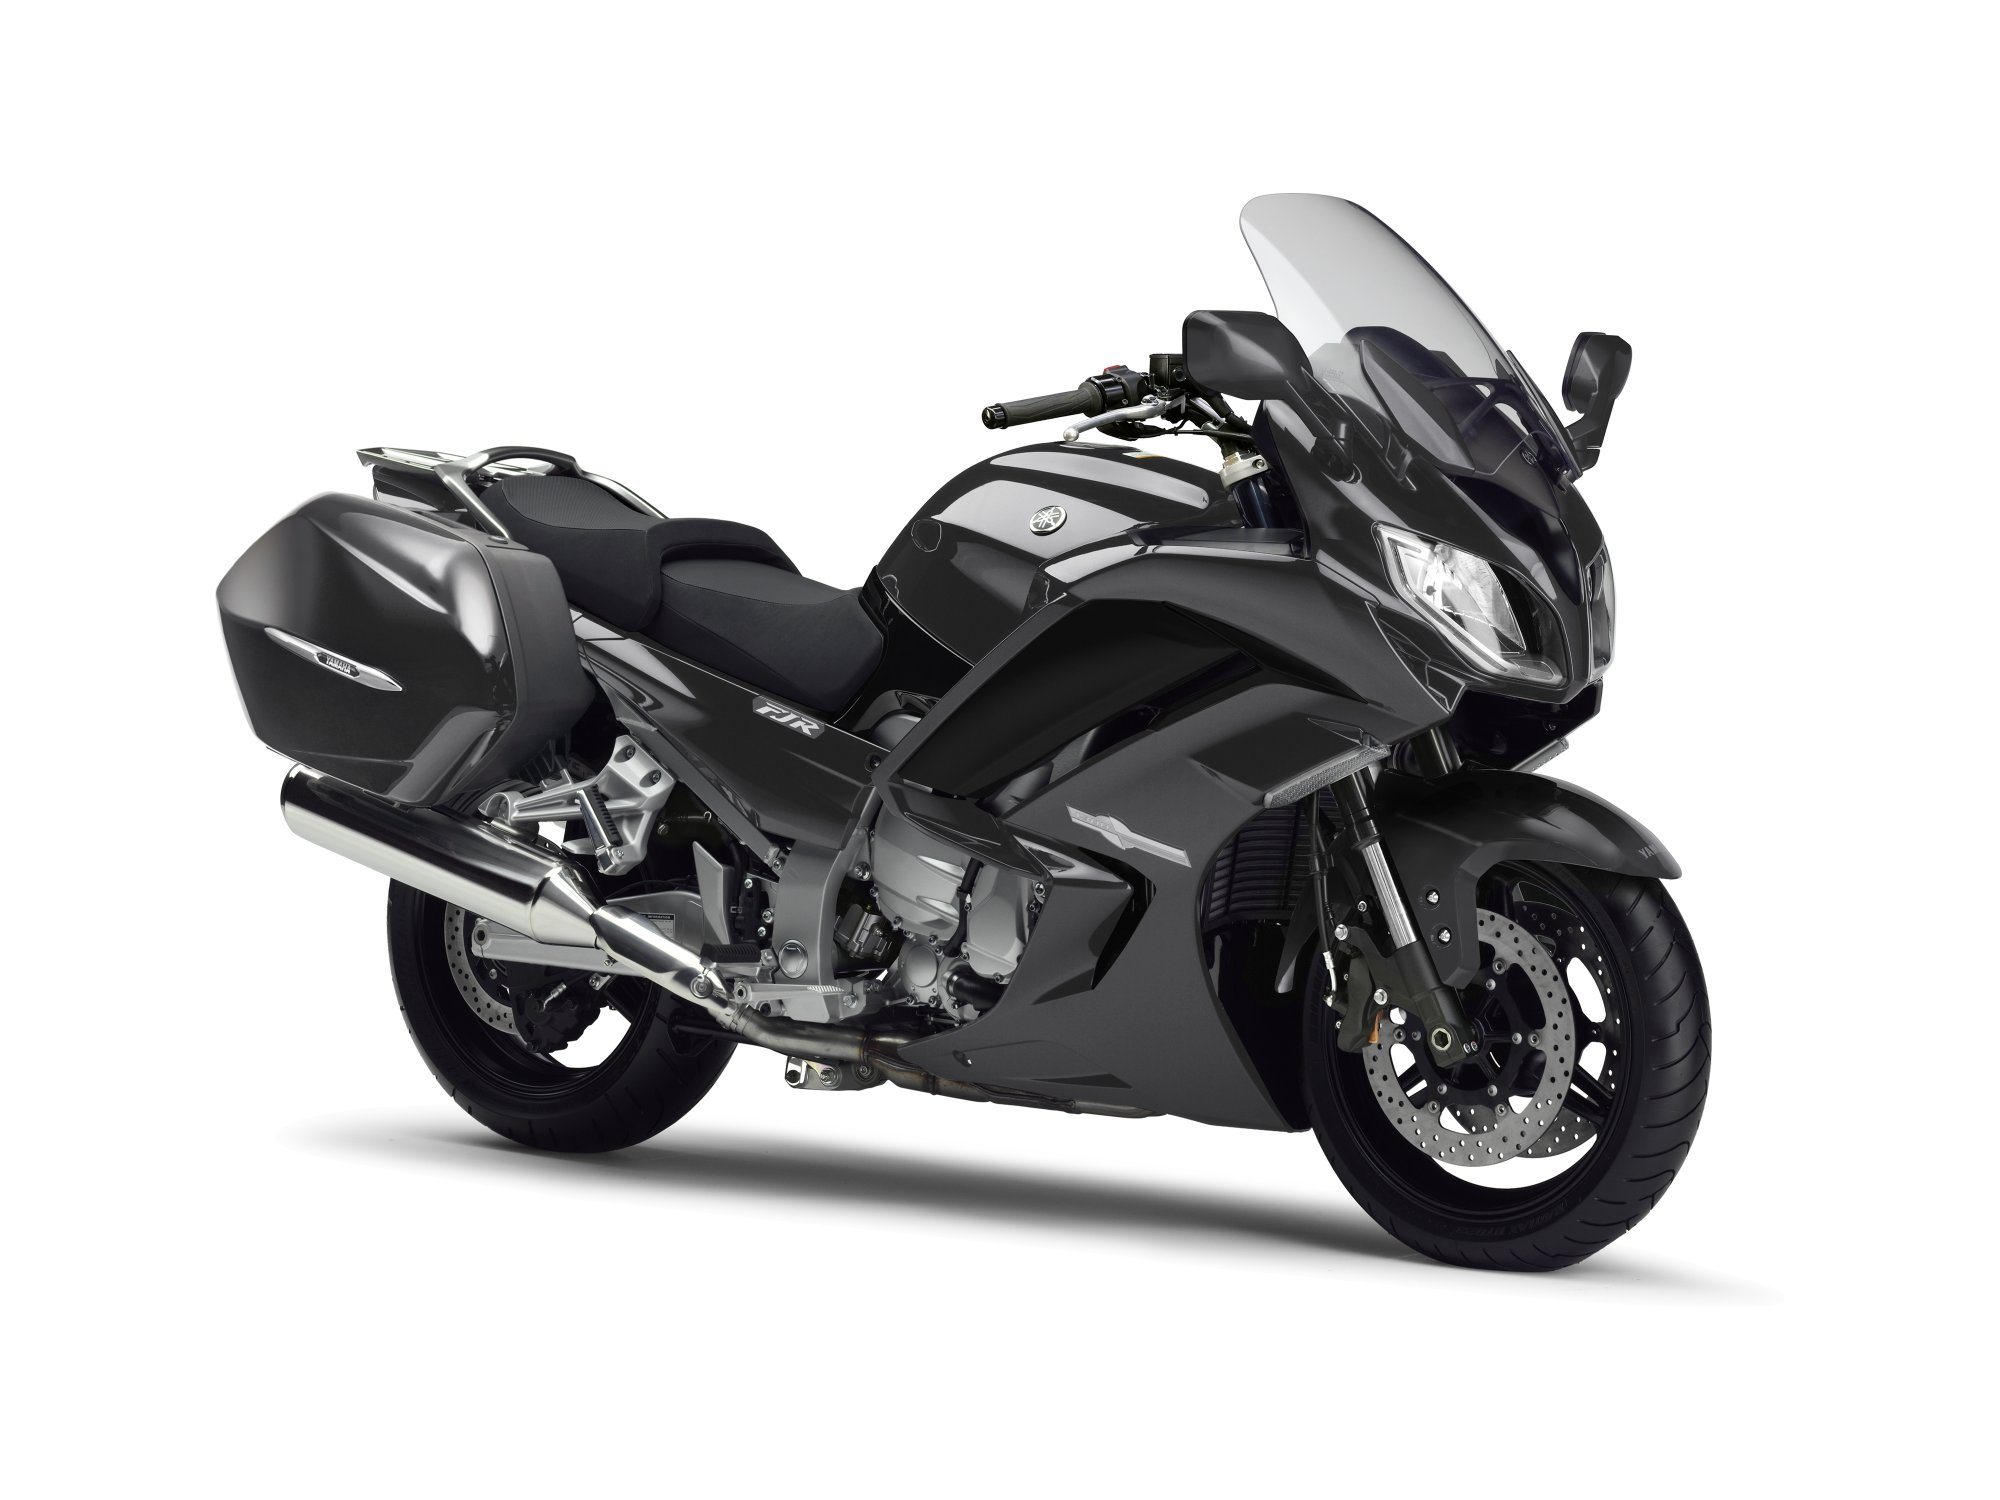 2013 yamaha fjr1300 motorcycle review and test drive holiday and